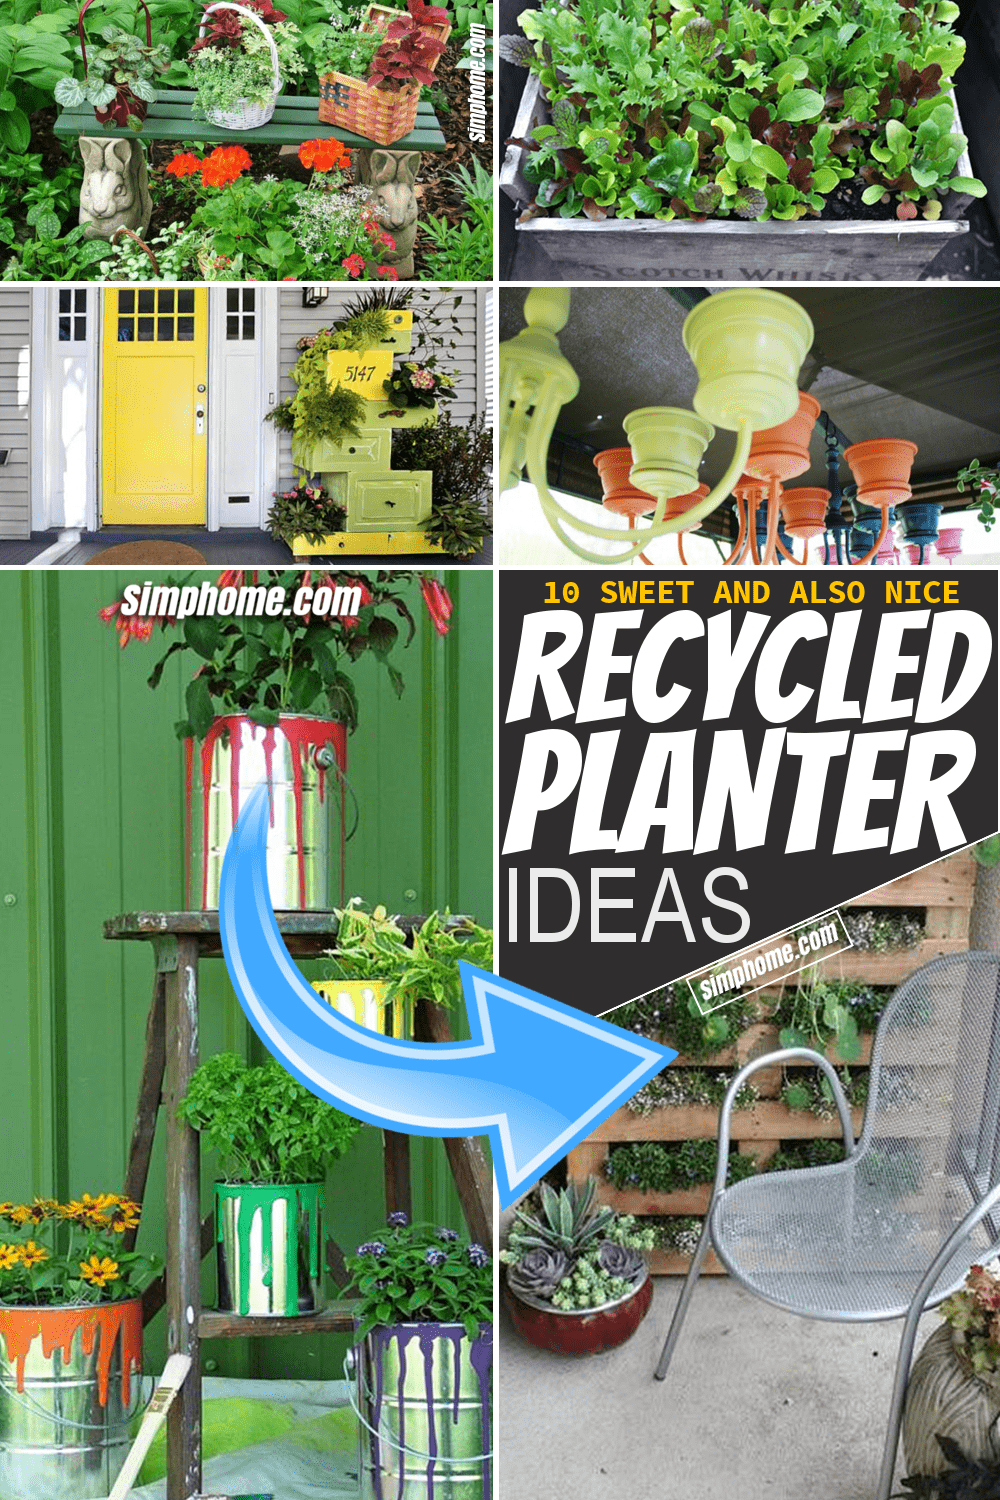 Simphome.com 10 Recycled Planter Ideas for Garden